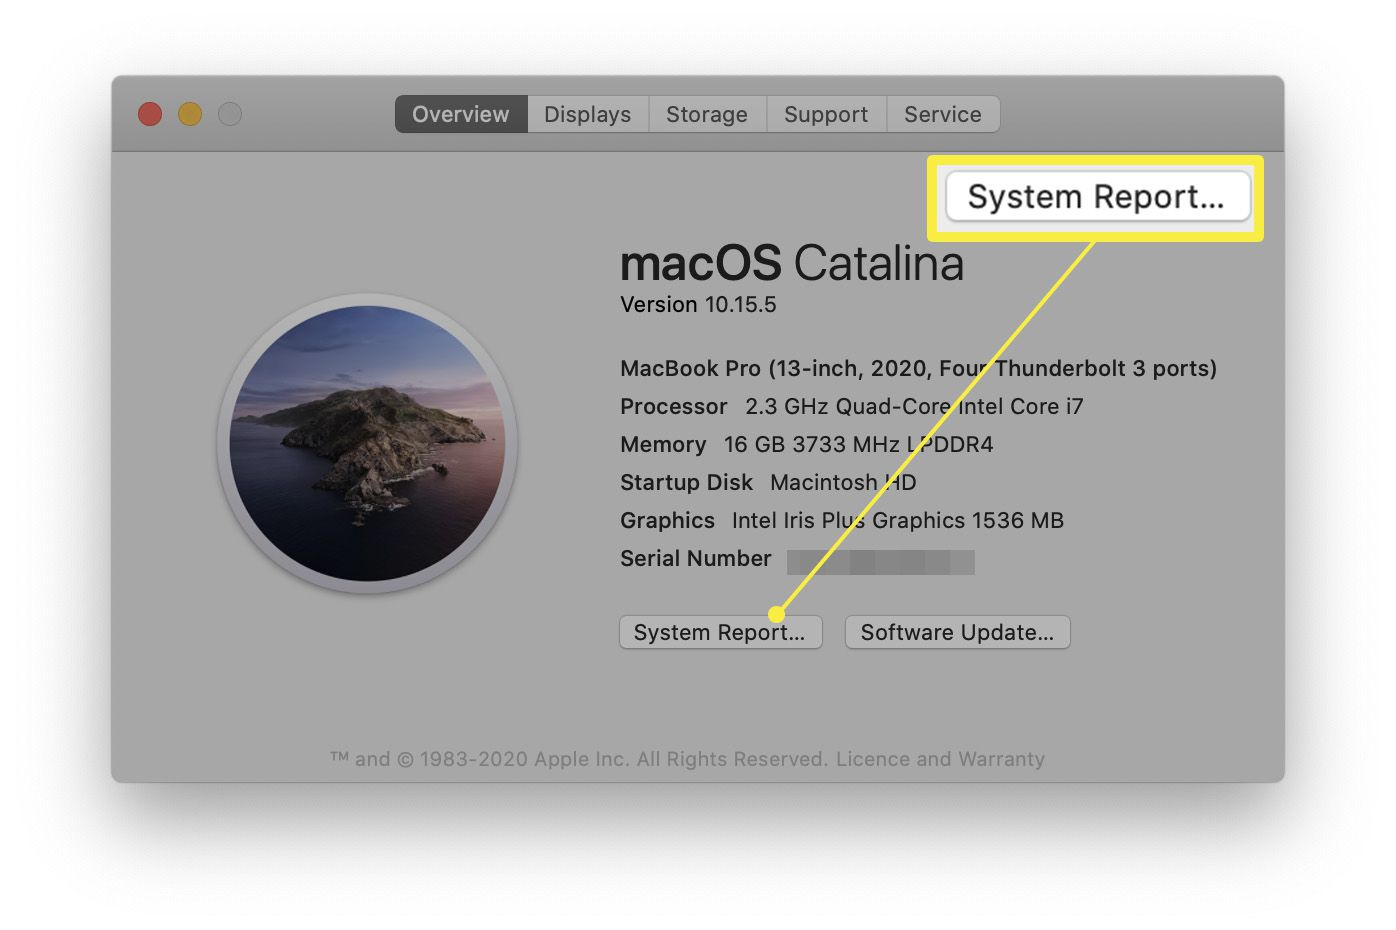 MacOS About This Page screen with System Report highlighted